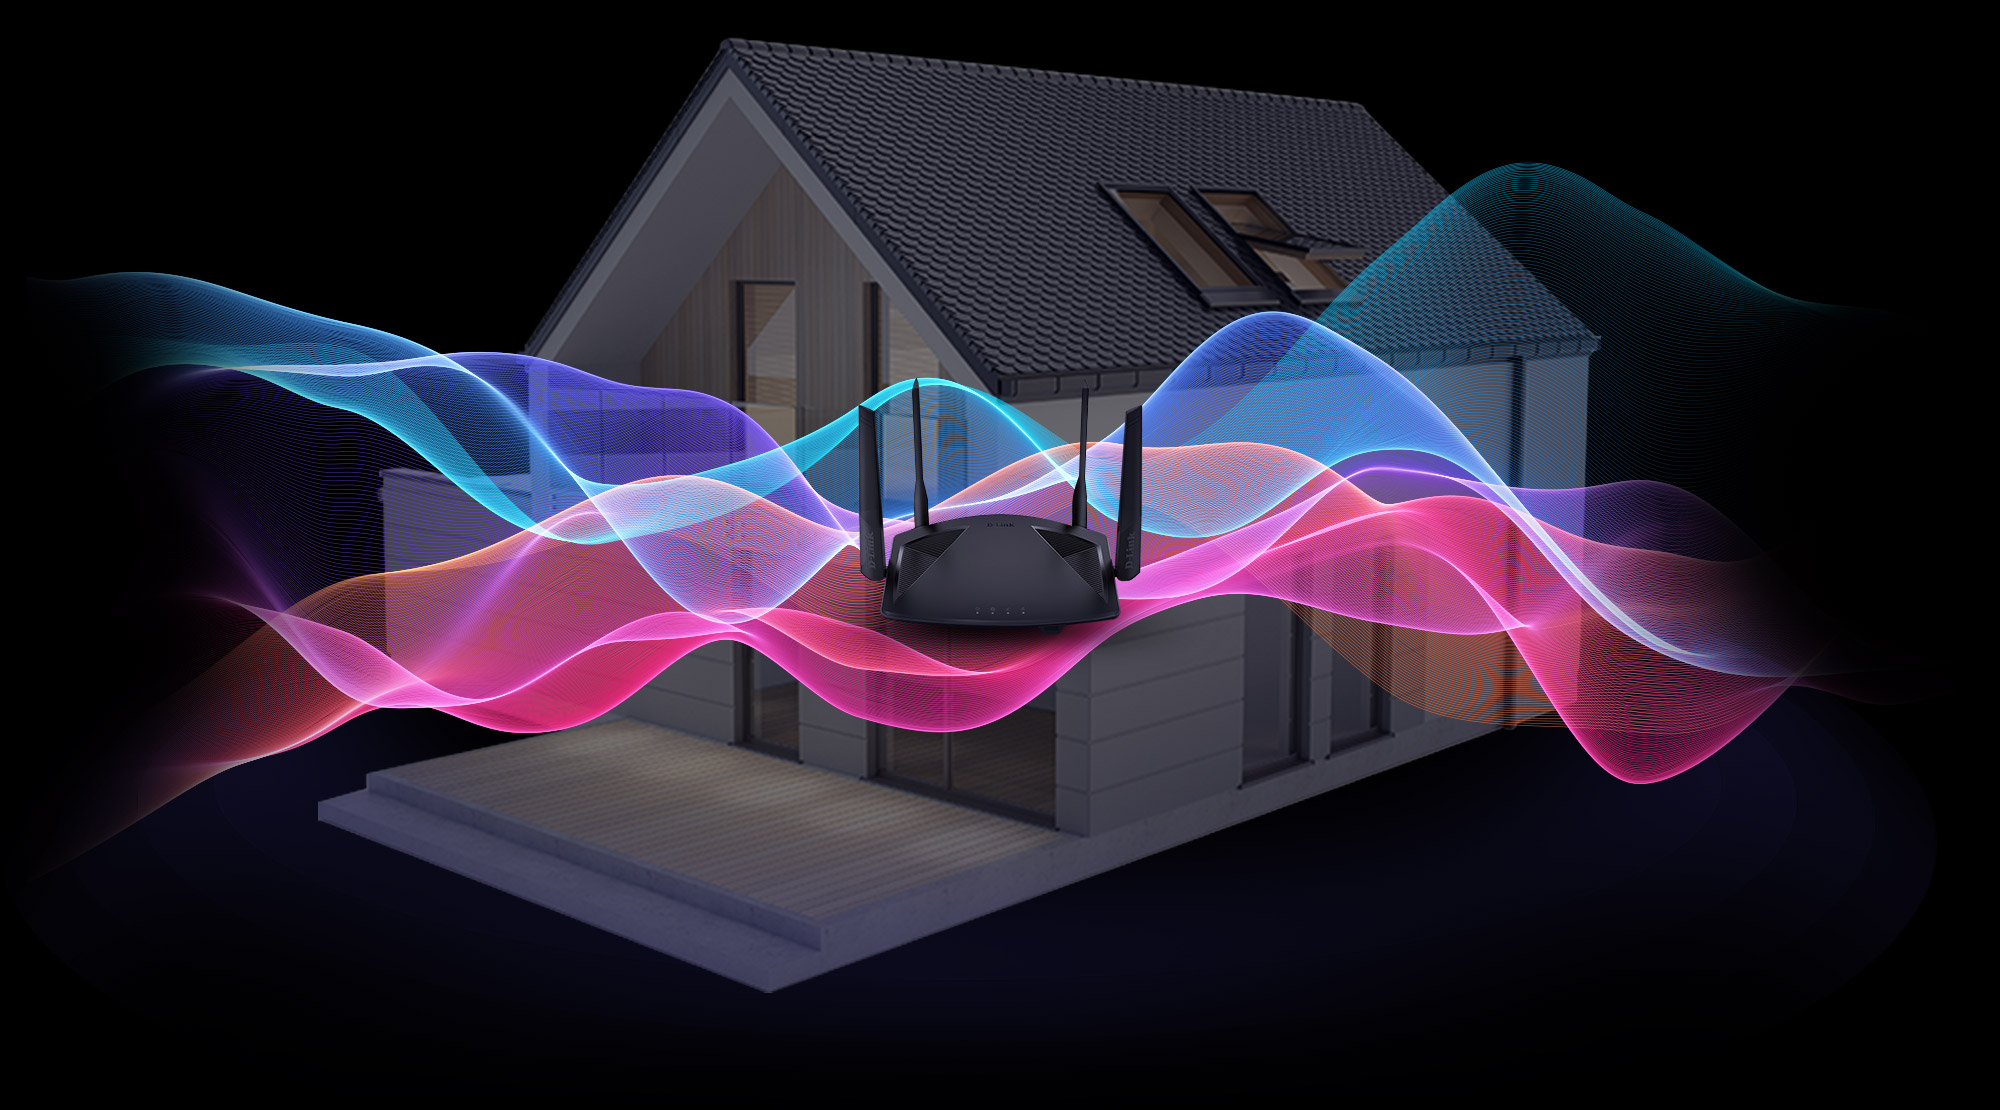 Wi-Fi 6 router with wireless waves overlaid on a smart home with a black background.